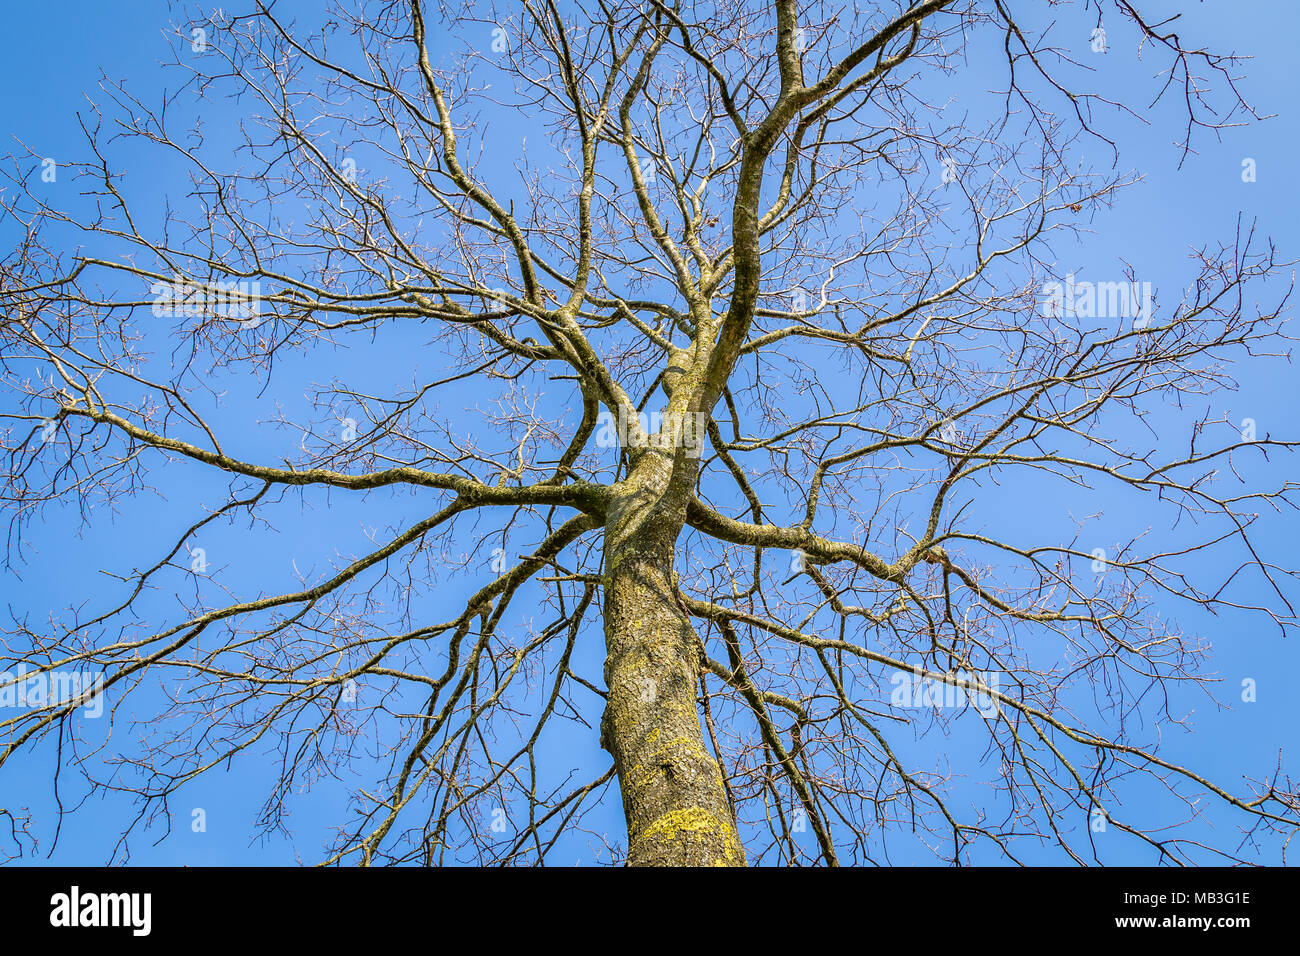 The complex structure of tre branches in front of a bluw sky as a metaphor form a complex social network - Stock Image